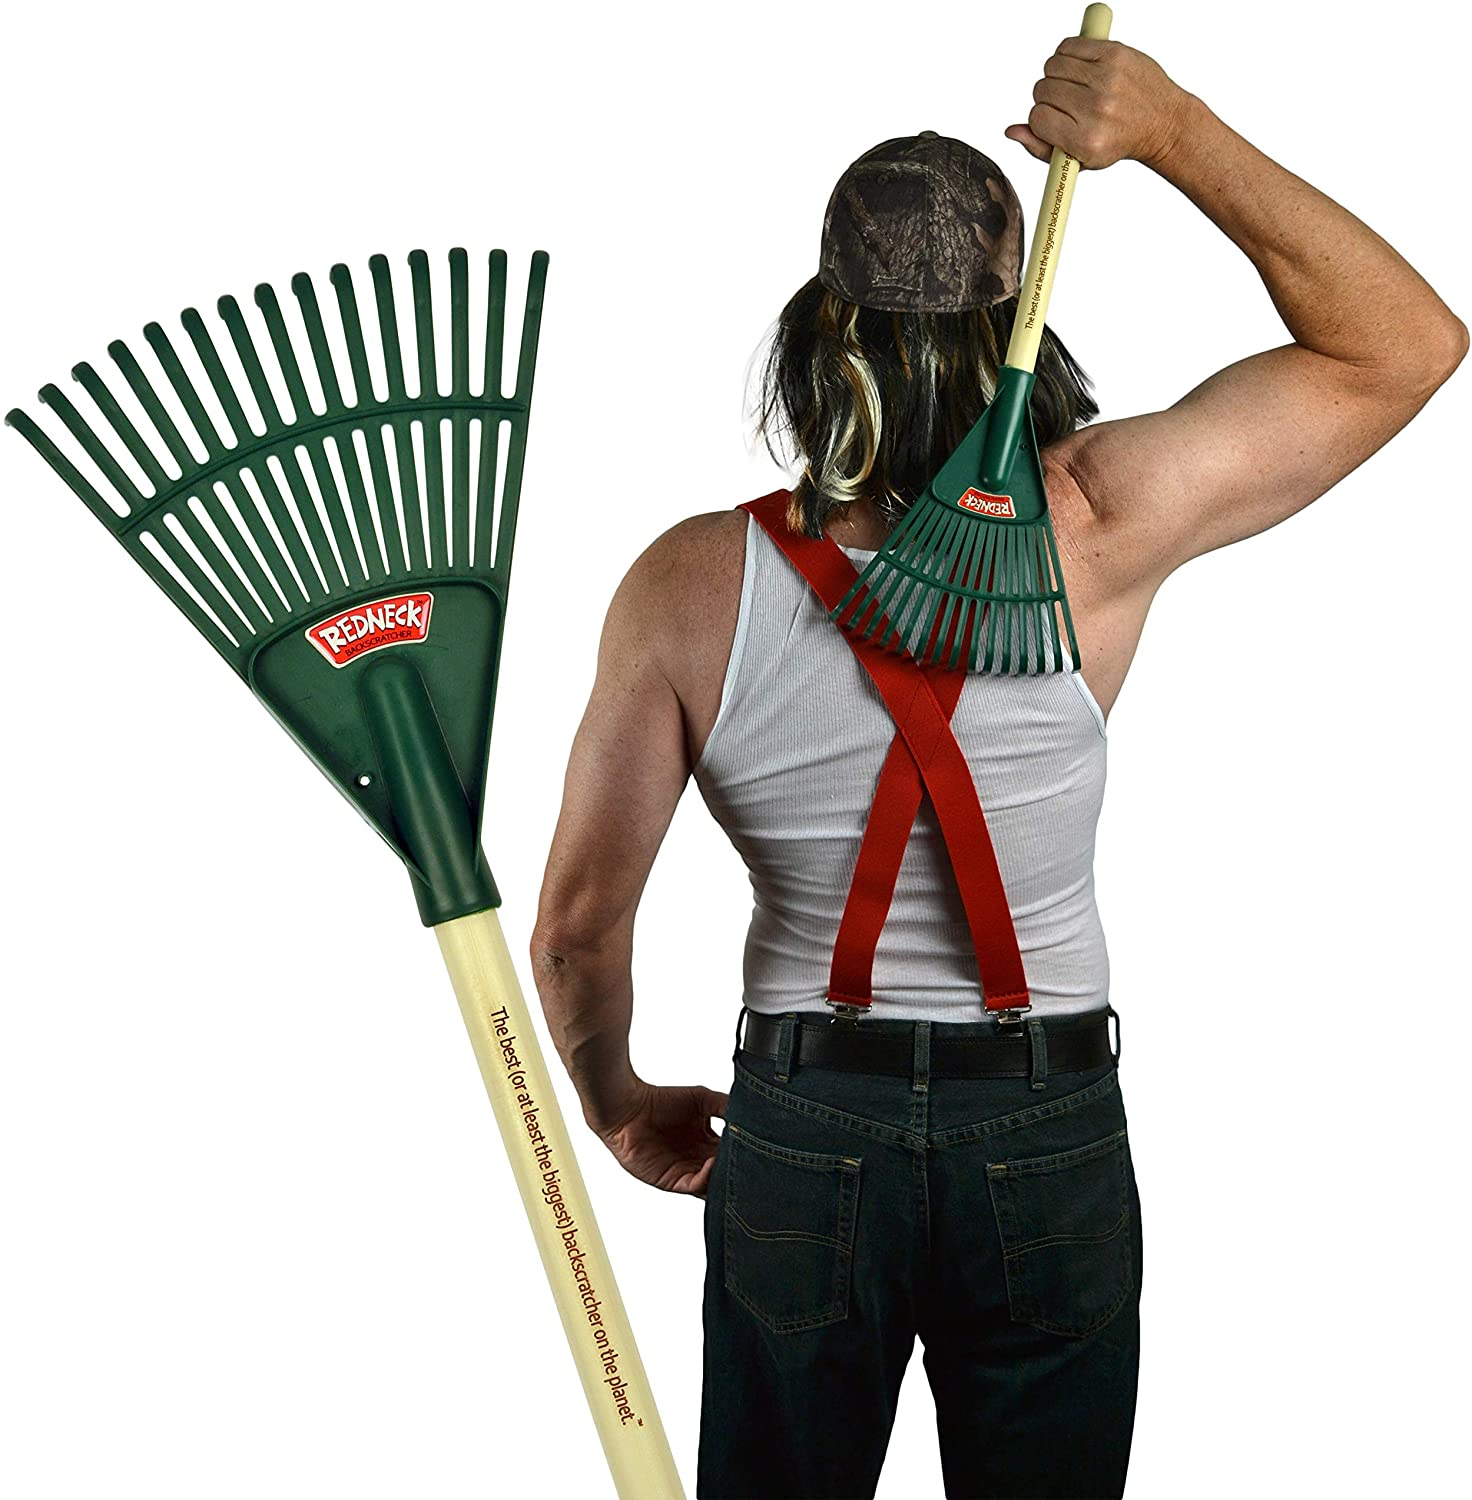 Redneck Backscratcher–The Best or at Biggest The Department store specialty shop Back Least